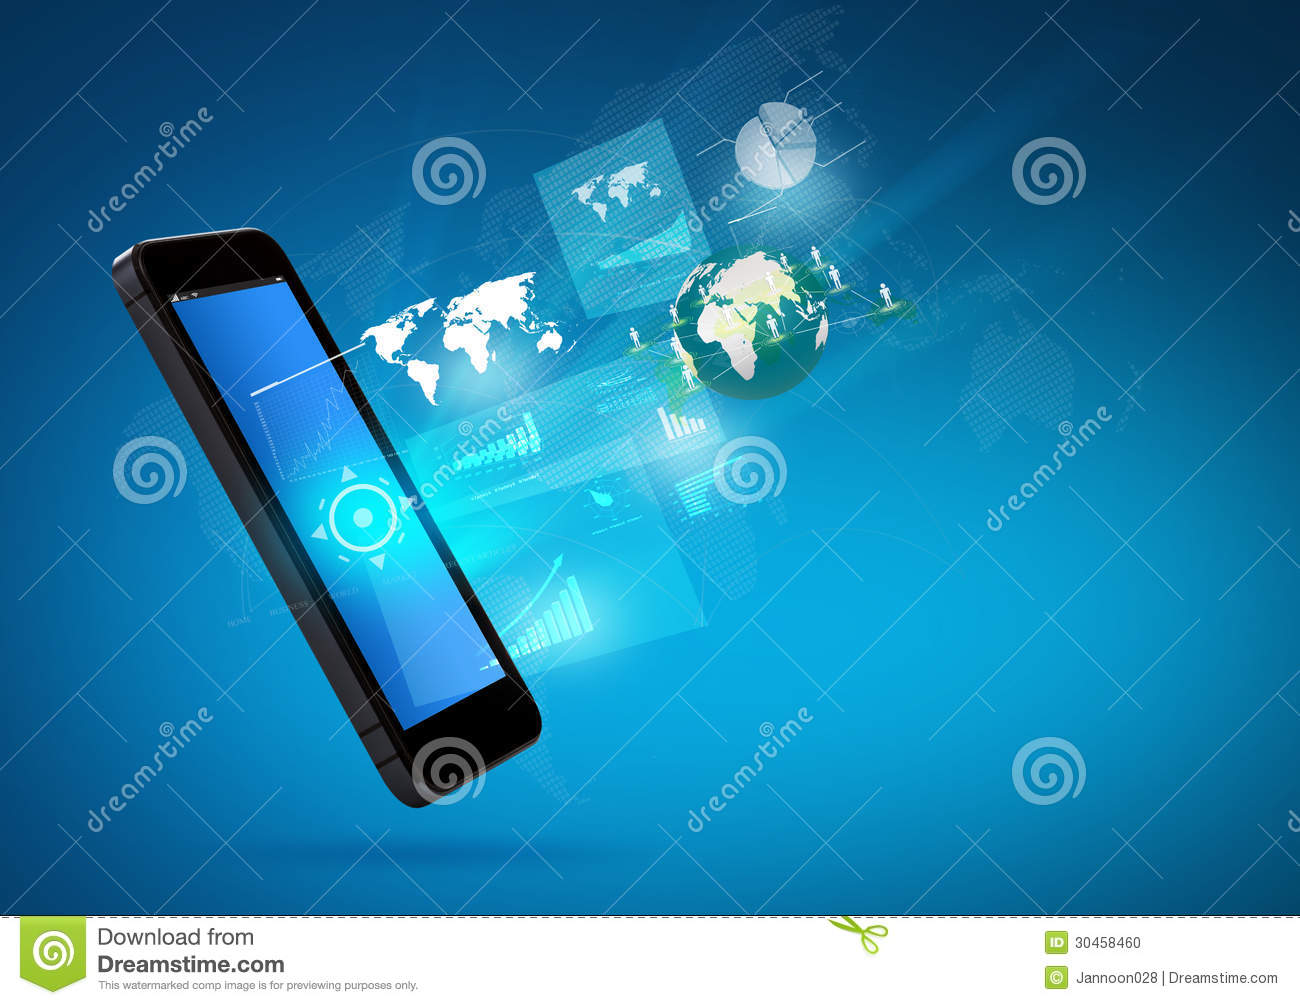 Mobile Technology: Modern Communication Technology Mobile Phone Stock Photo